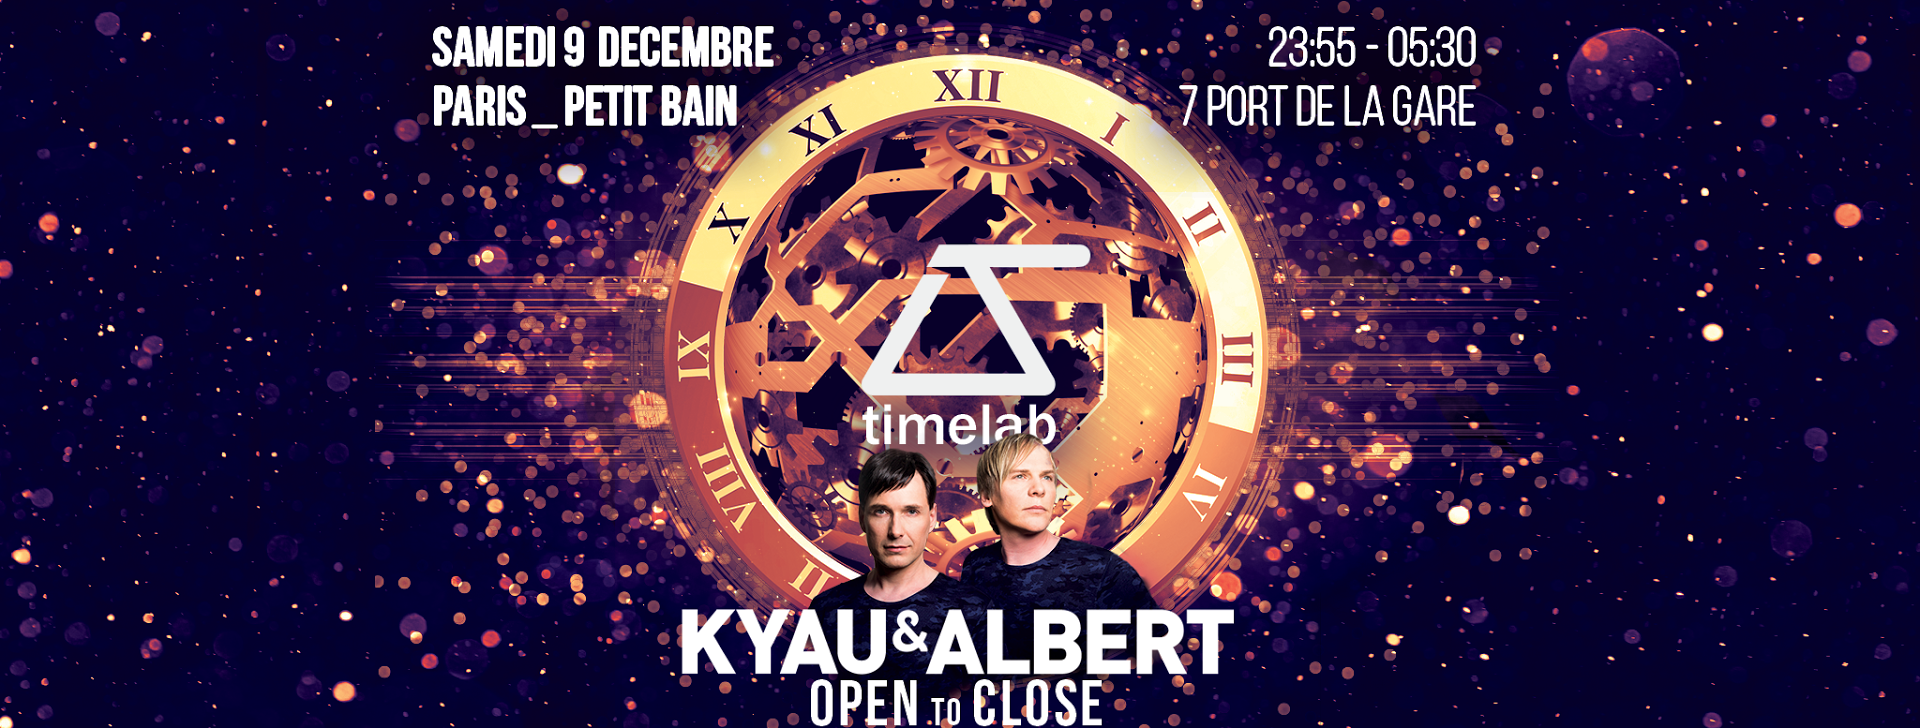 09.12.2017 Kyau & Albert open2close, Paris